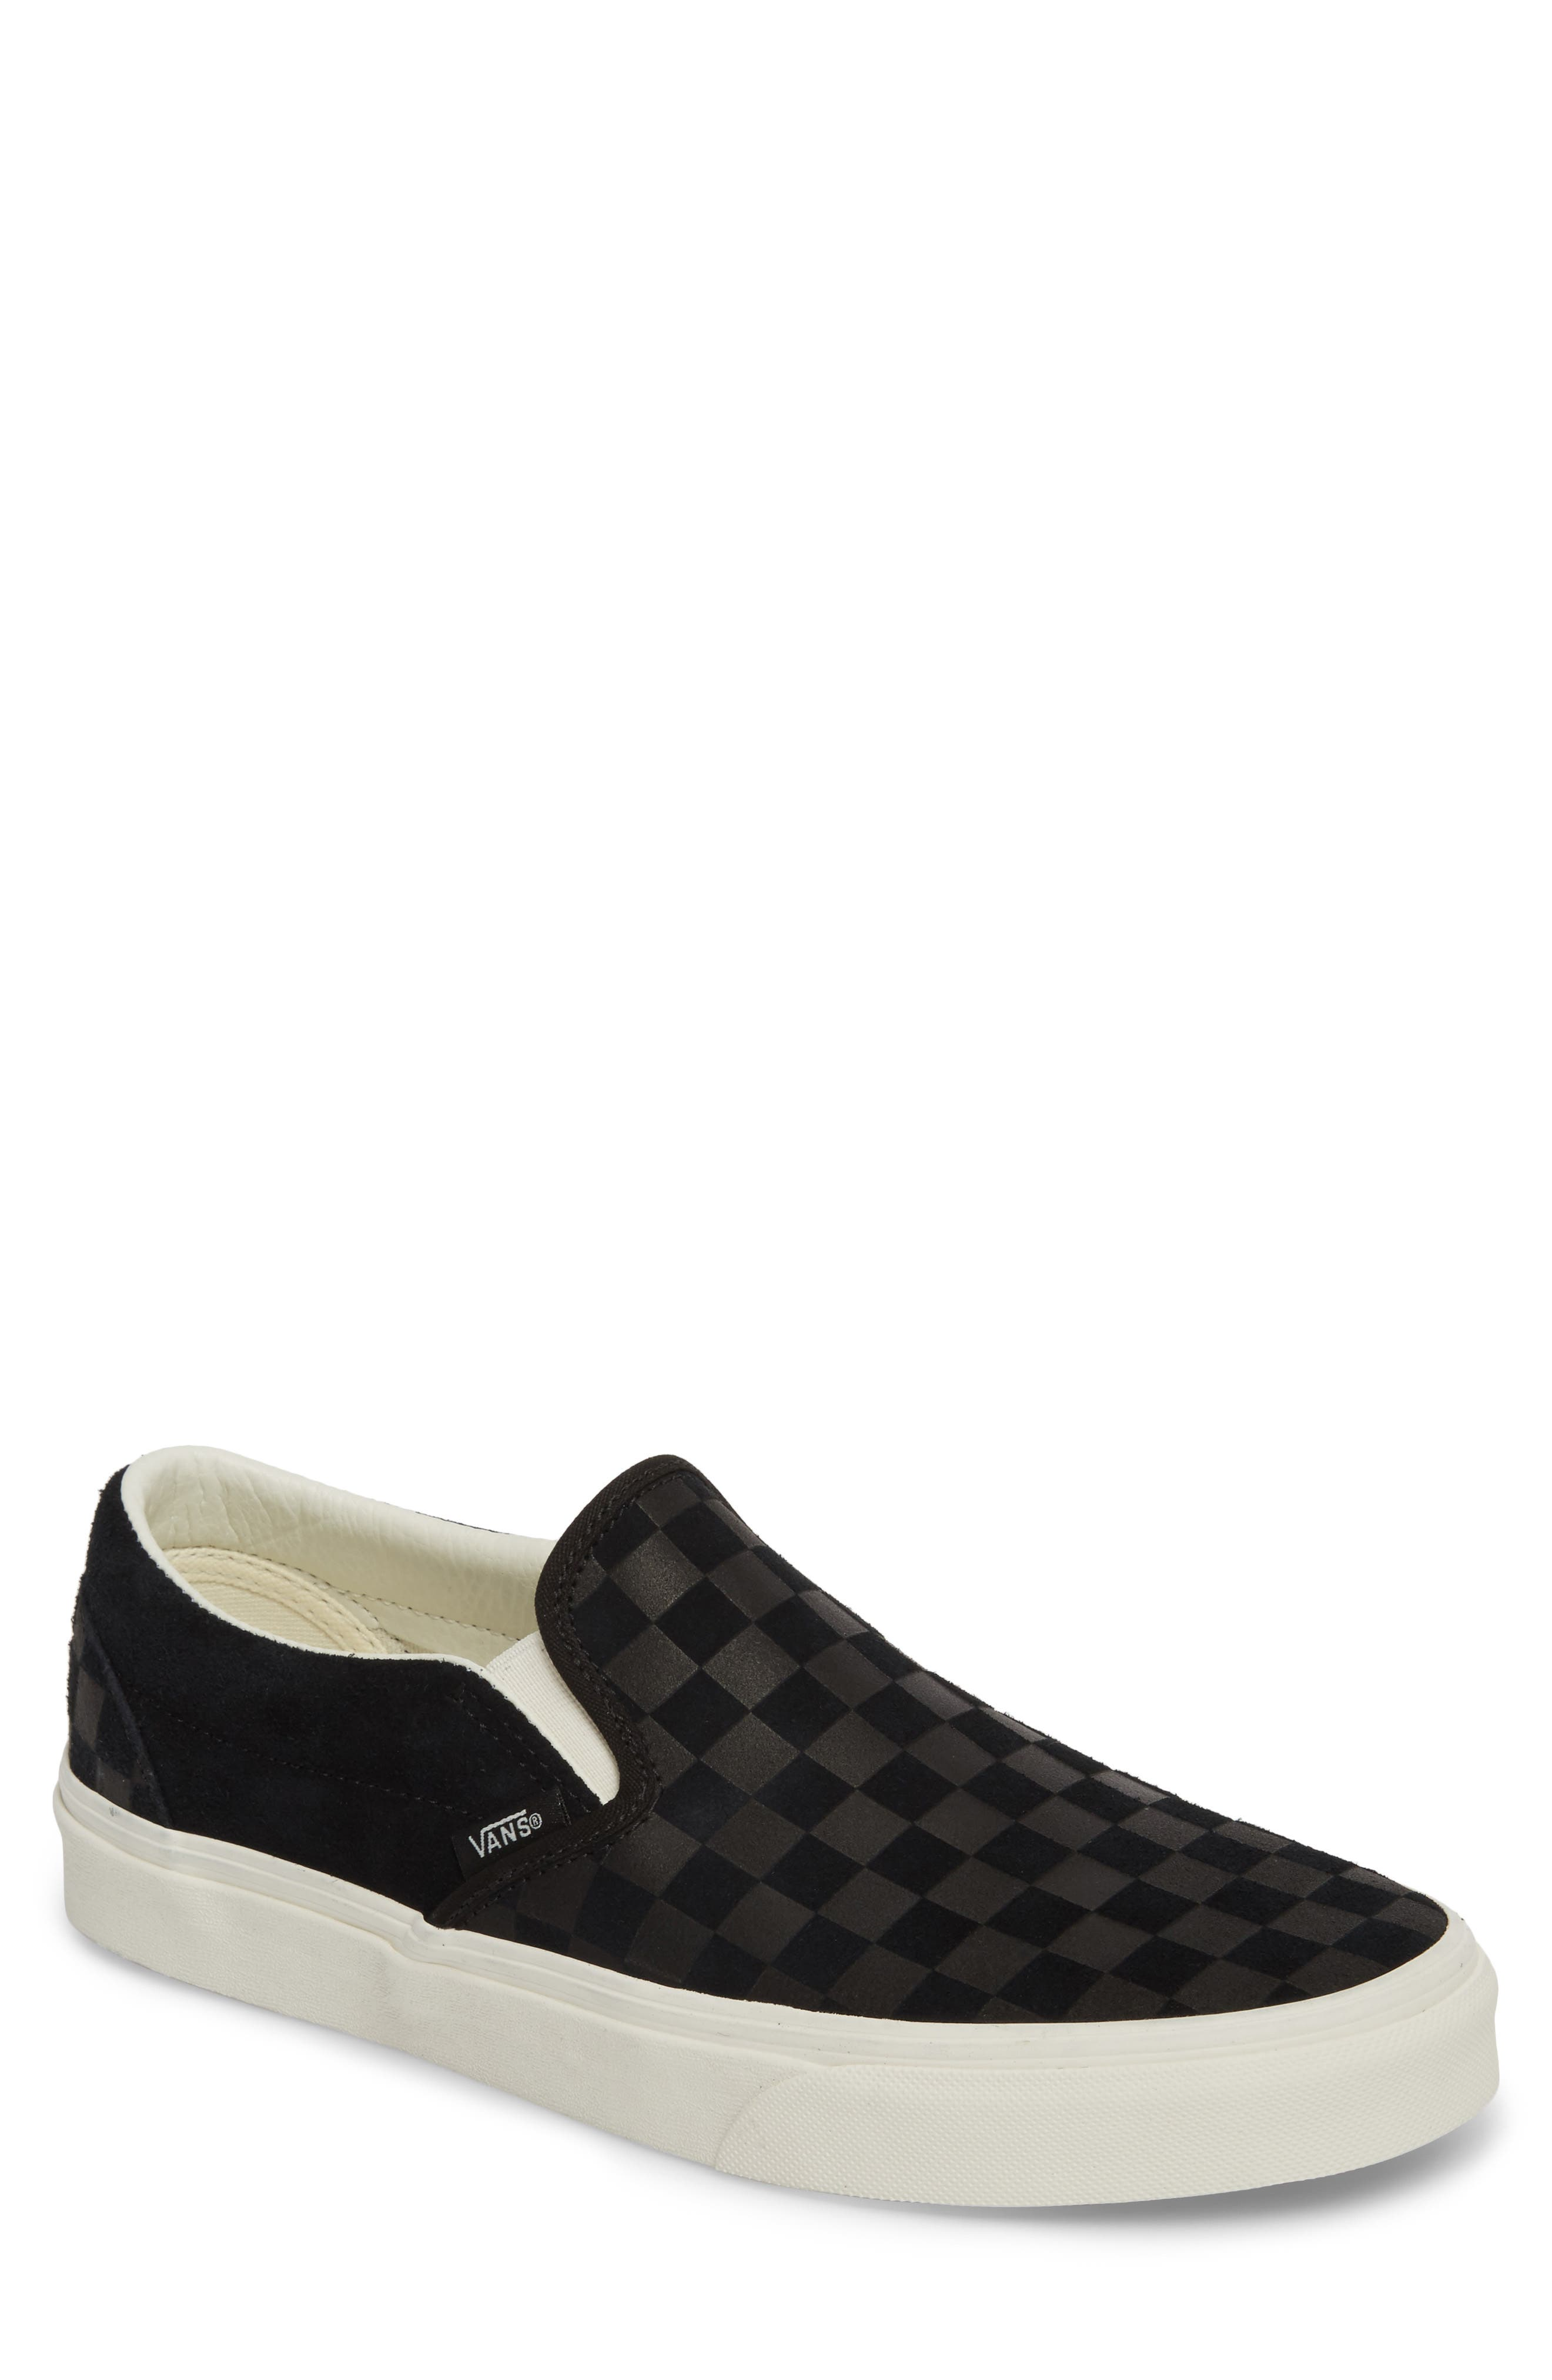 Classic Slip-On Sneaker,                         Main,                         color, 001